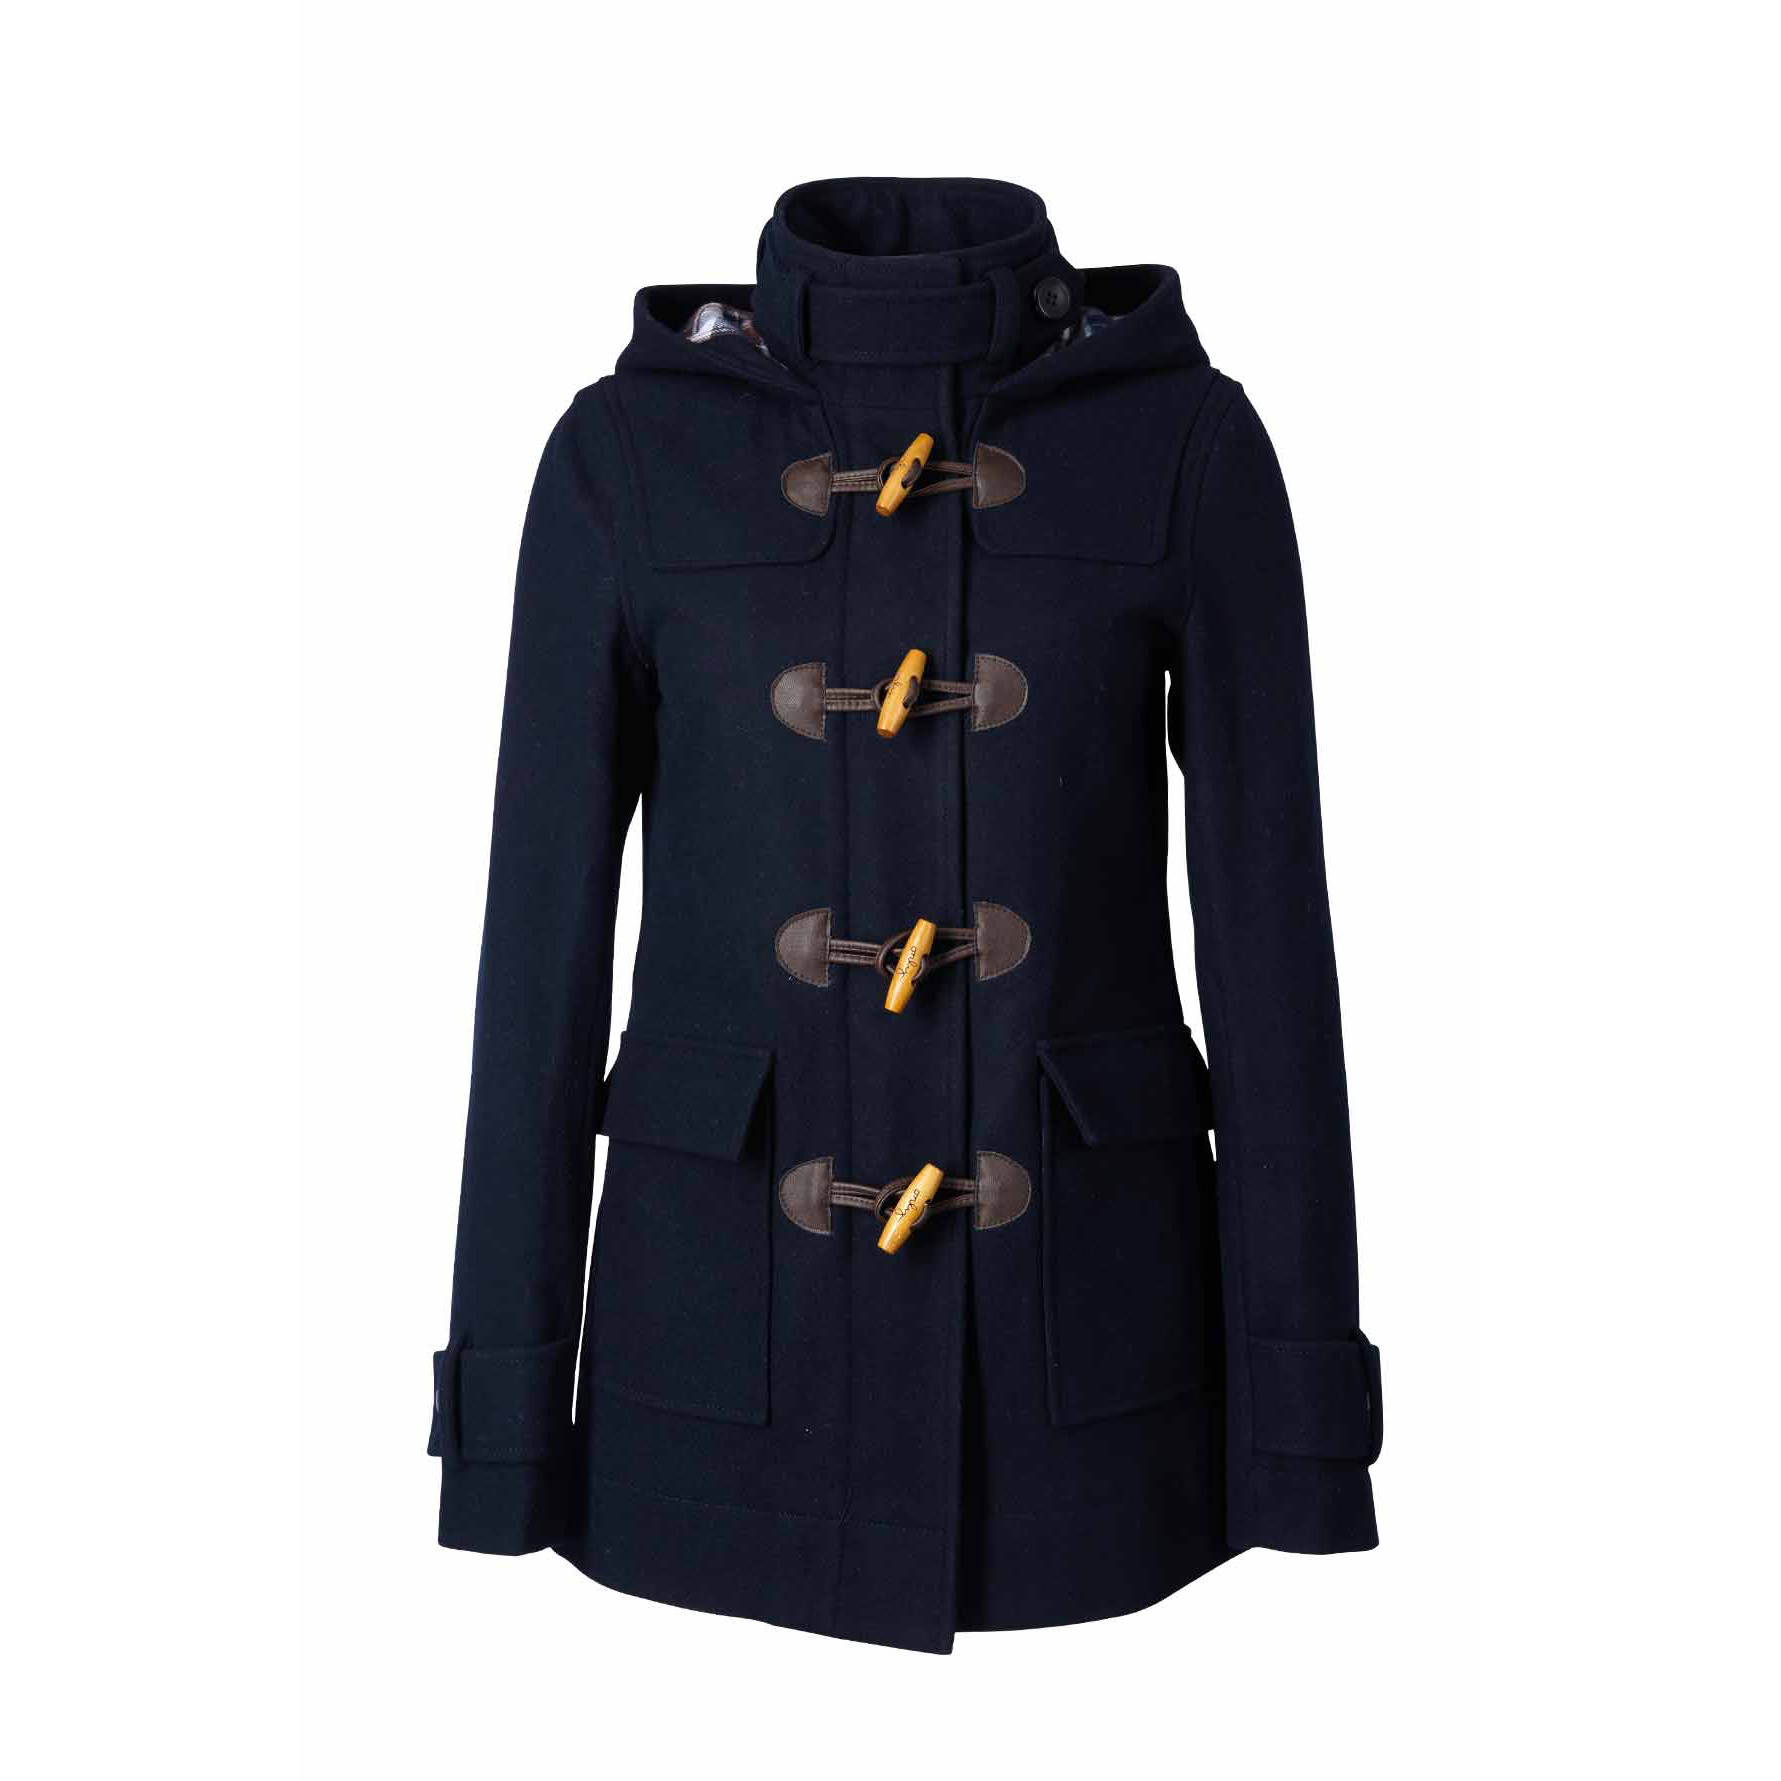 Vero Moda - Womens Wool hooded Duffle Coat | eBay